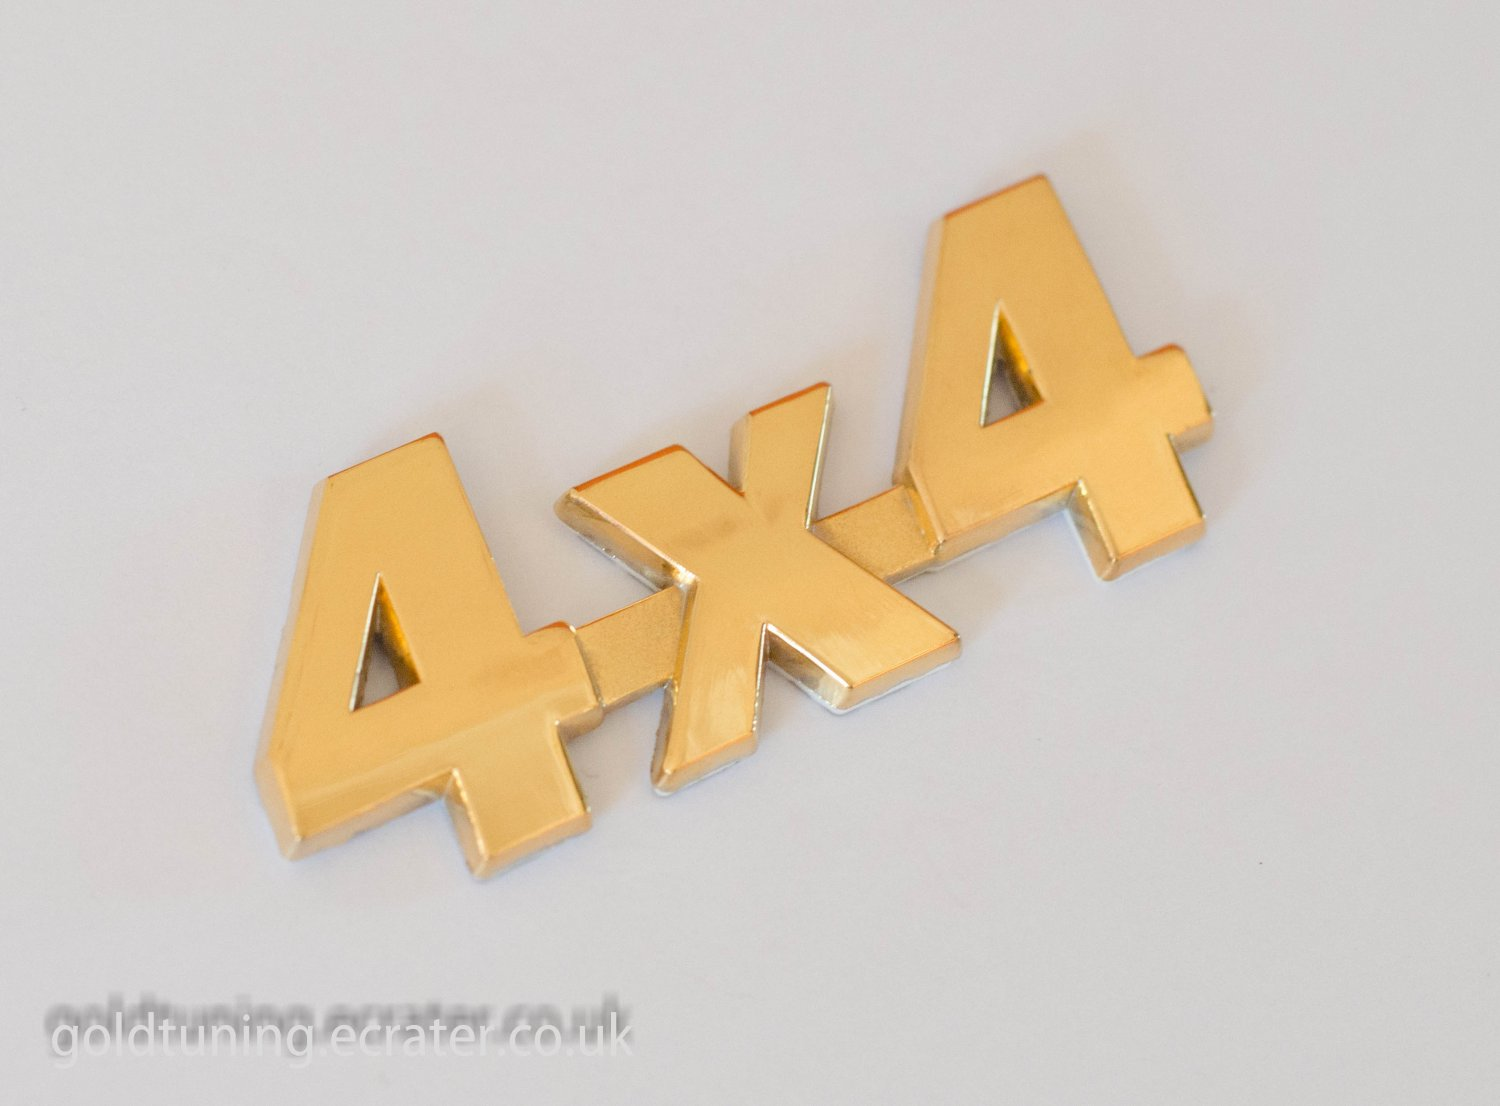 4x4 24K Gold Plated 3D Metal Car Badge / Adhesive Badge Sticker Decor